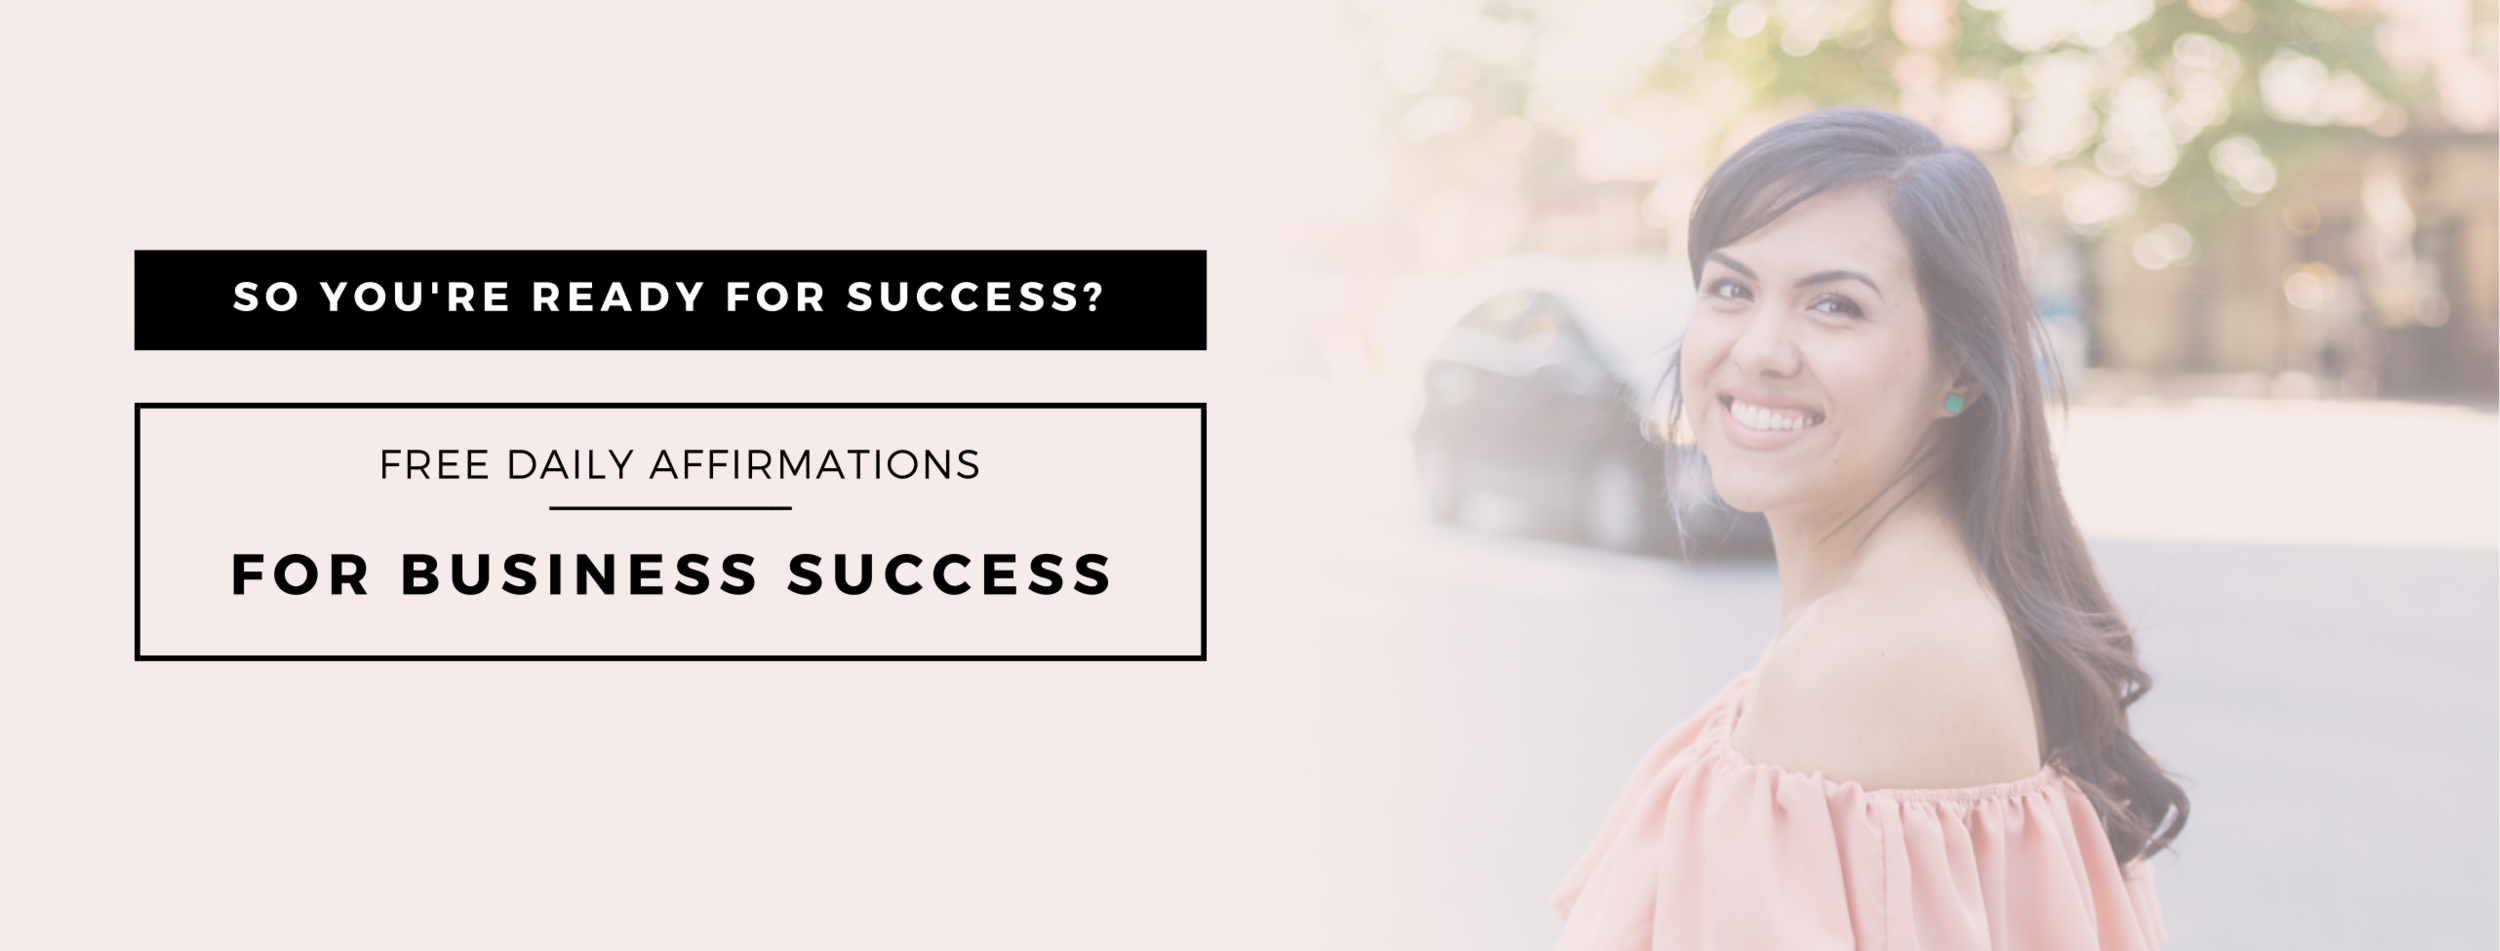 Affirmations for Business Success Banner.png